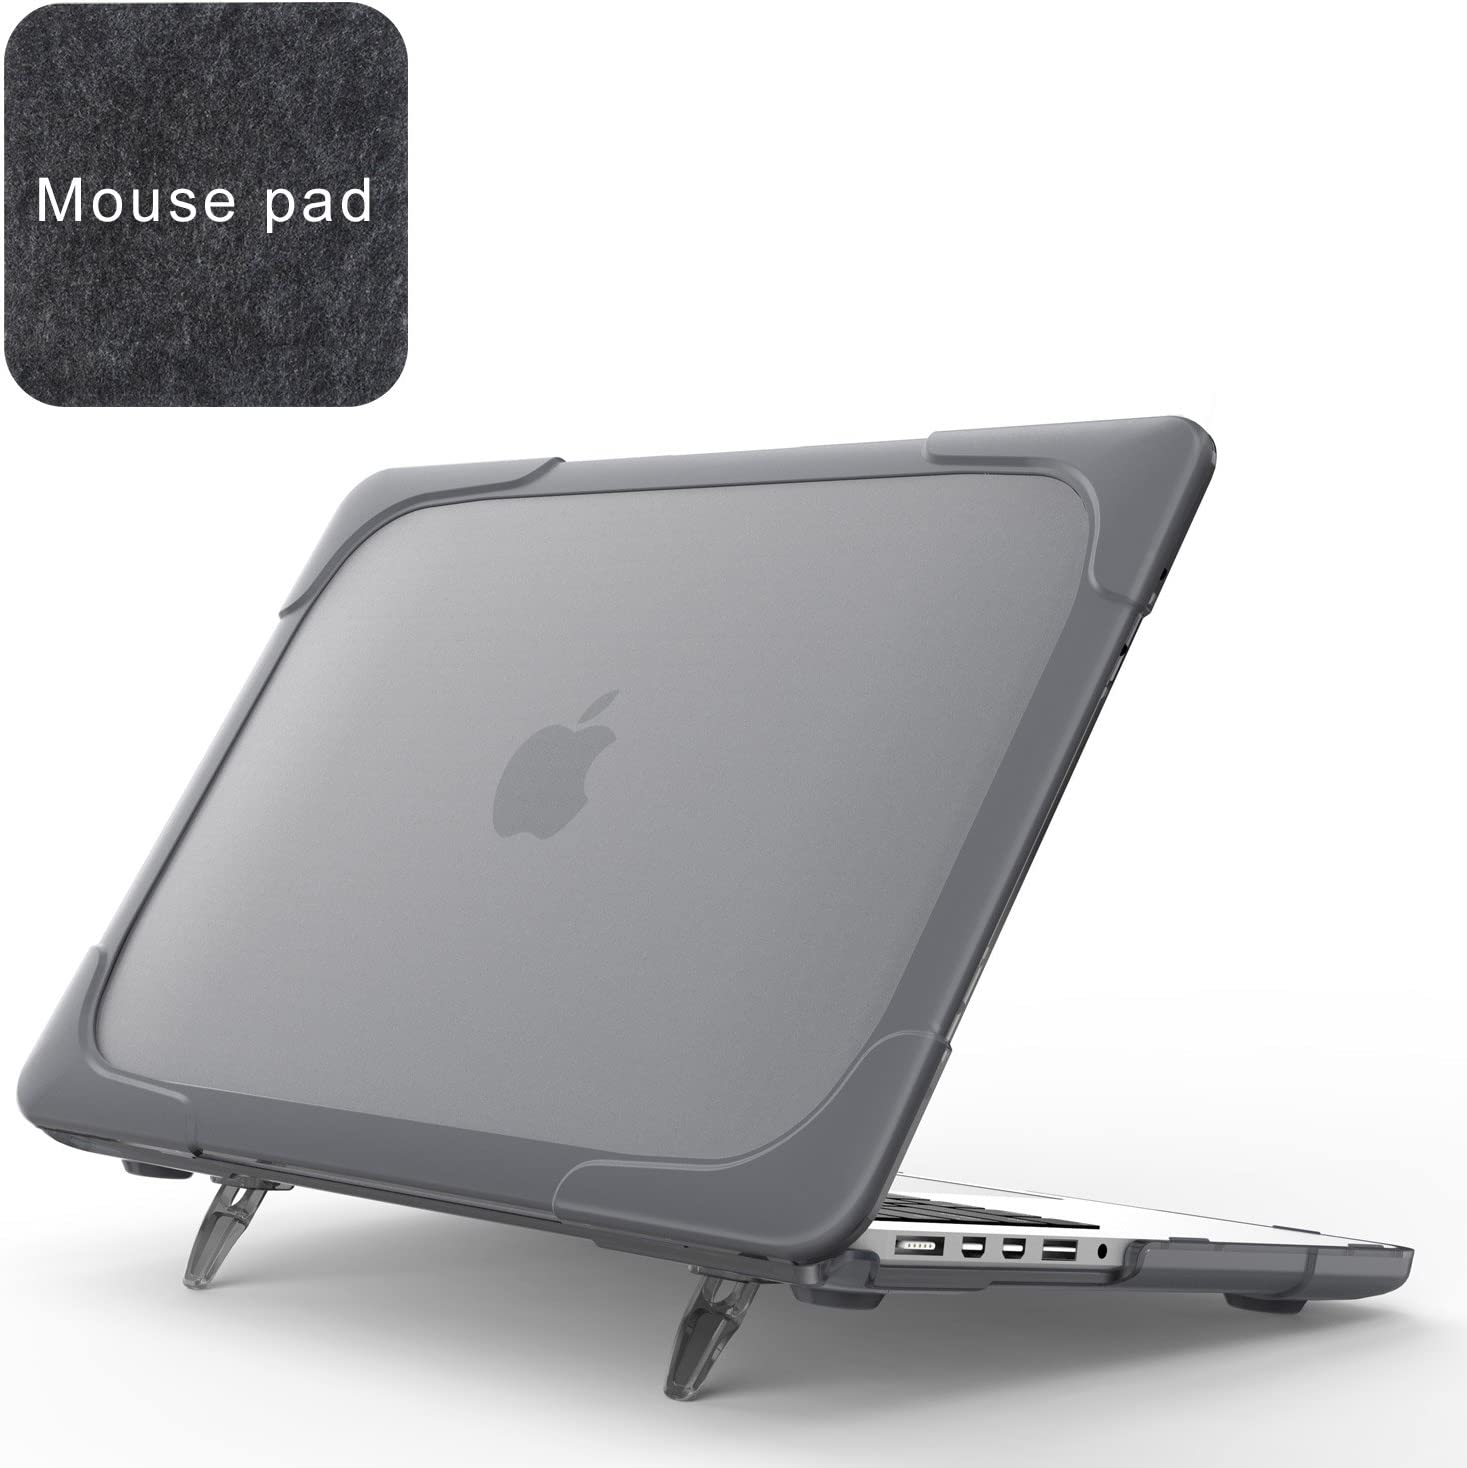 "Spessn Compatible with [Heavy Duty Series] Hard Shell Protective Cover Case for MacBook Pro 15.4"" with Retina Display (Model: A1398, NO CD-ROM Drive) -Grey"